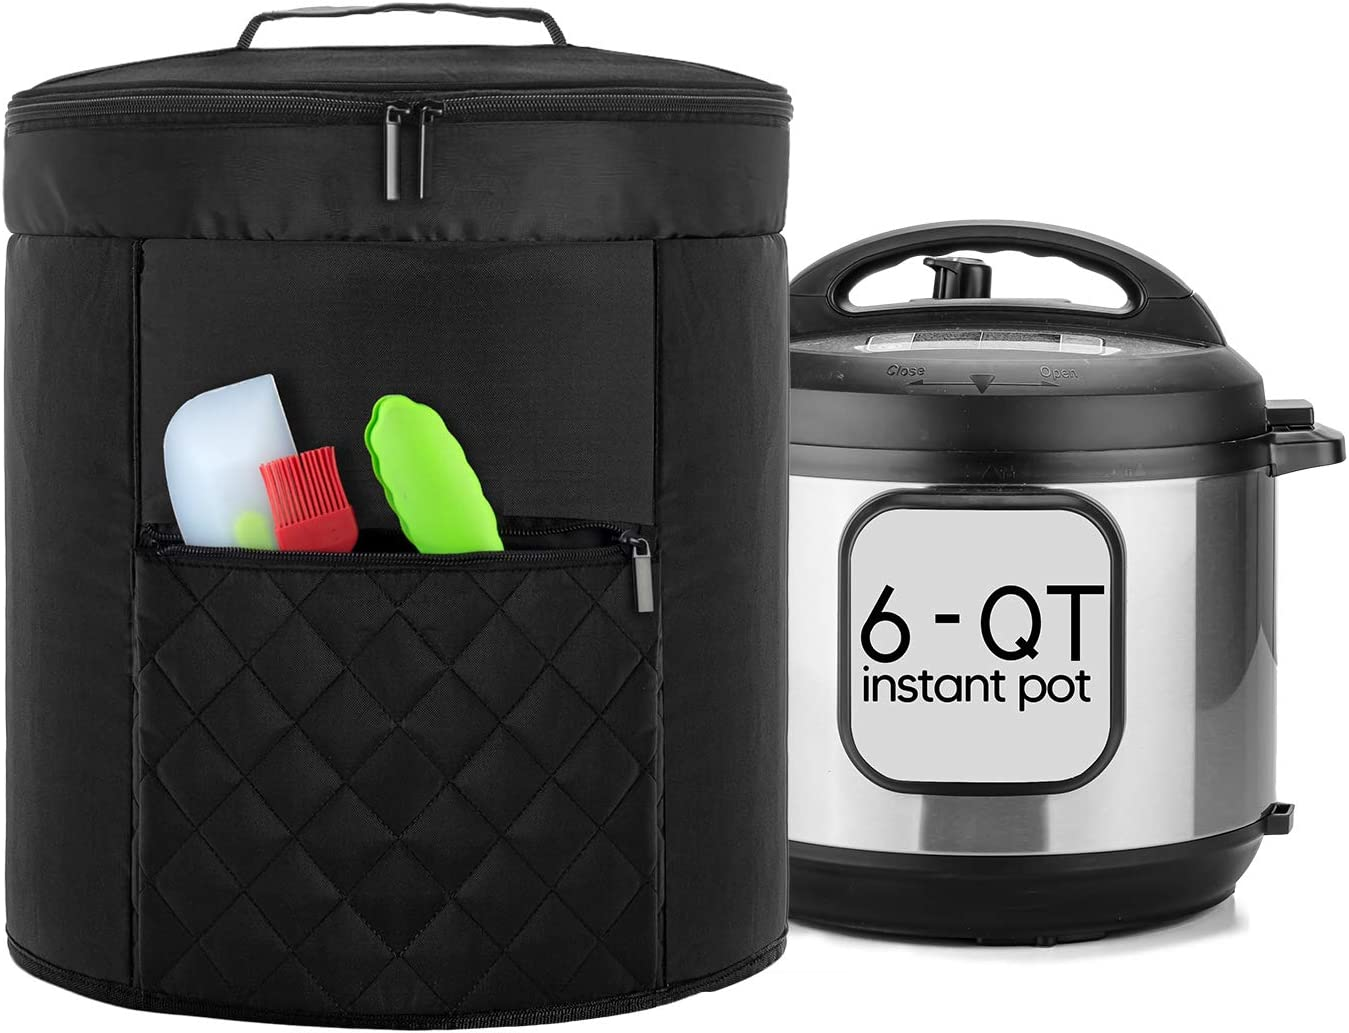 Luxja 2 Layers Cover Compatible with 6 Quart Instant Pot, Pressure Cooker Cover with Zipper Sections (Compatible with 6 Quart Instant Pot), Black